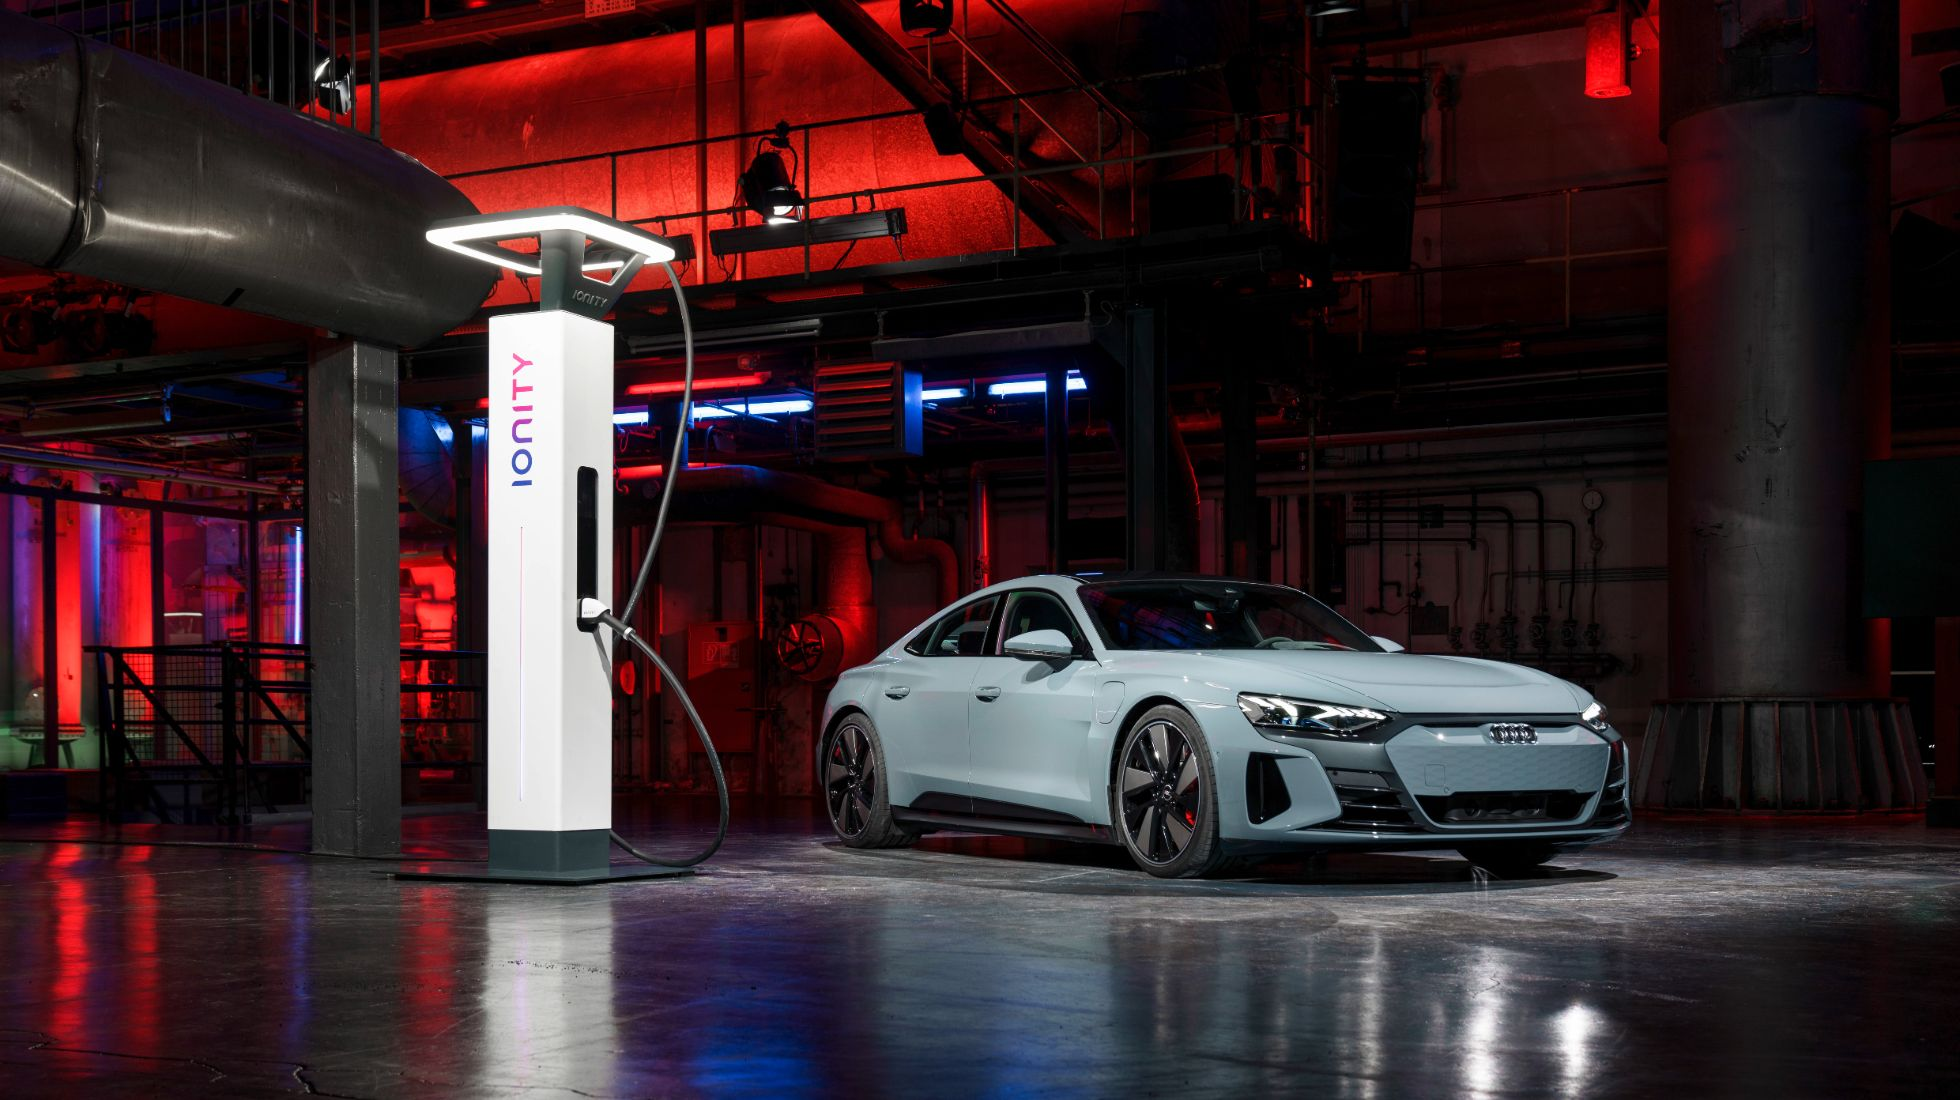 Audi e-tron GT: 5 Tech Features We're Excited About